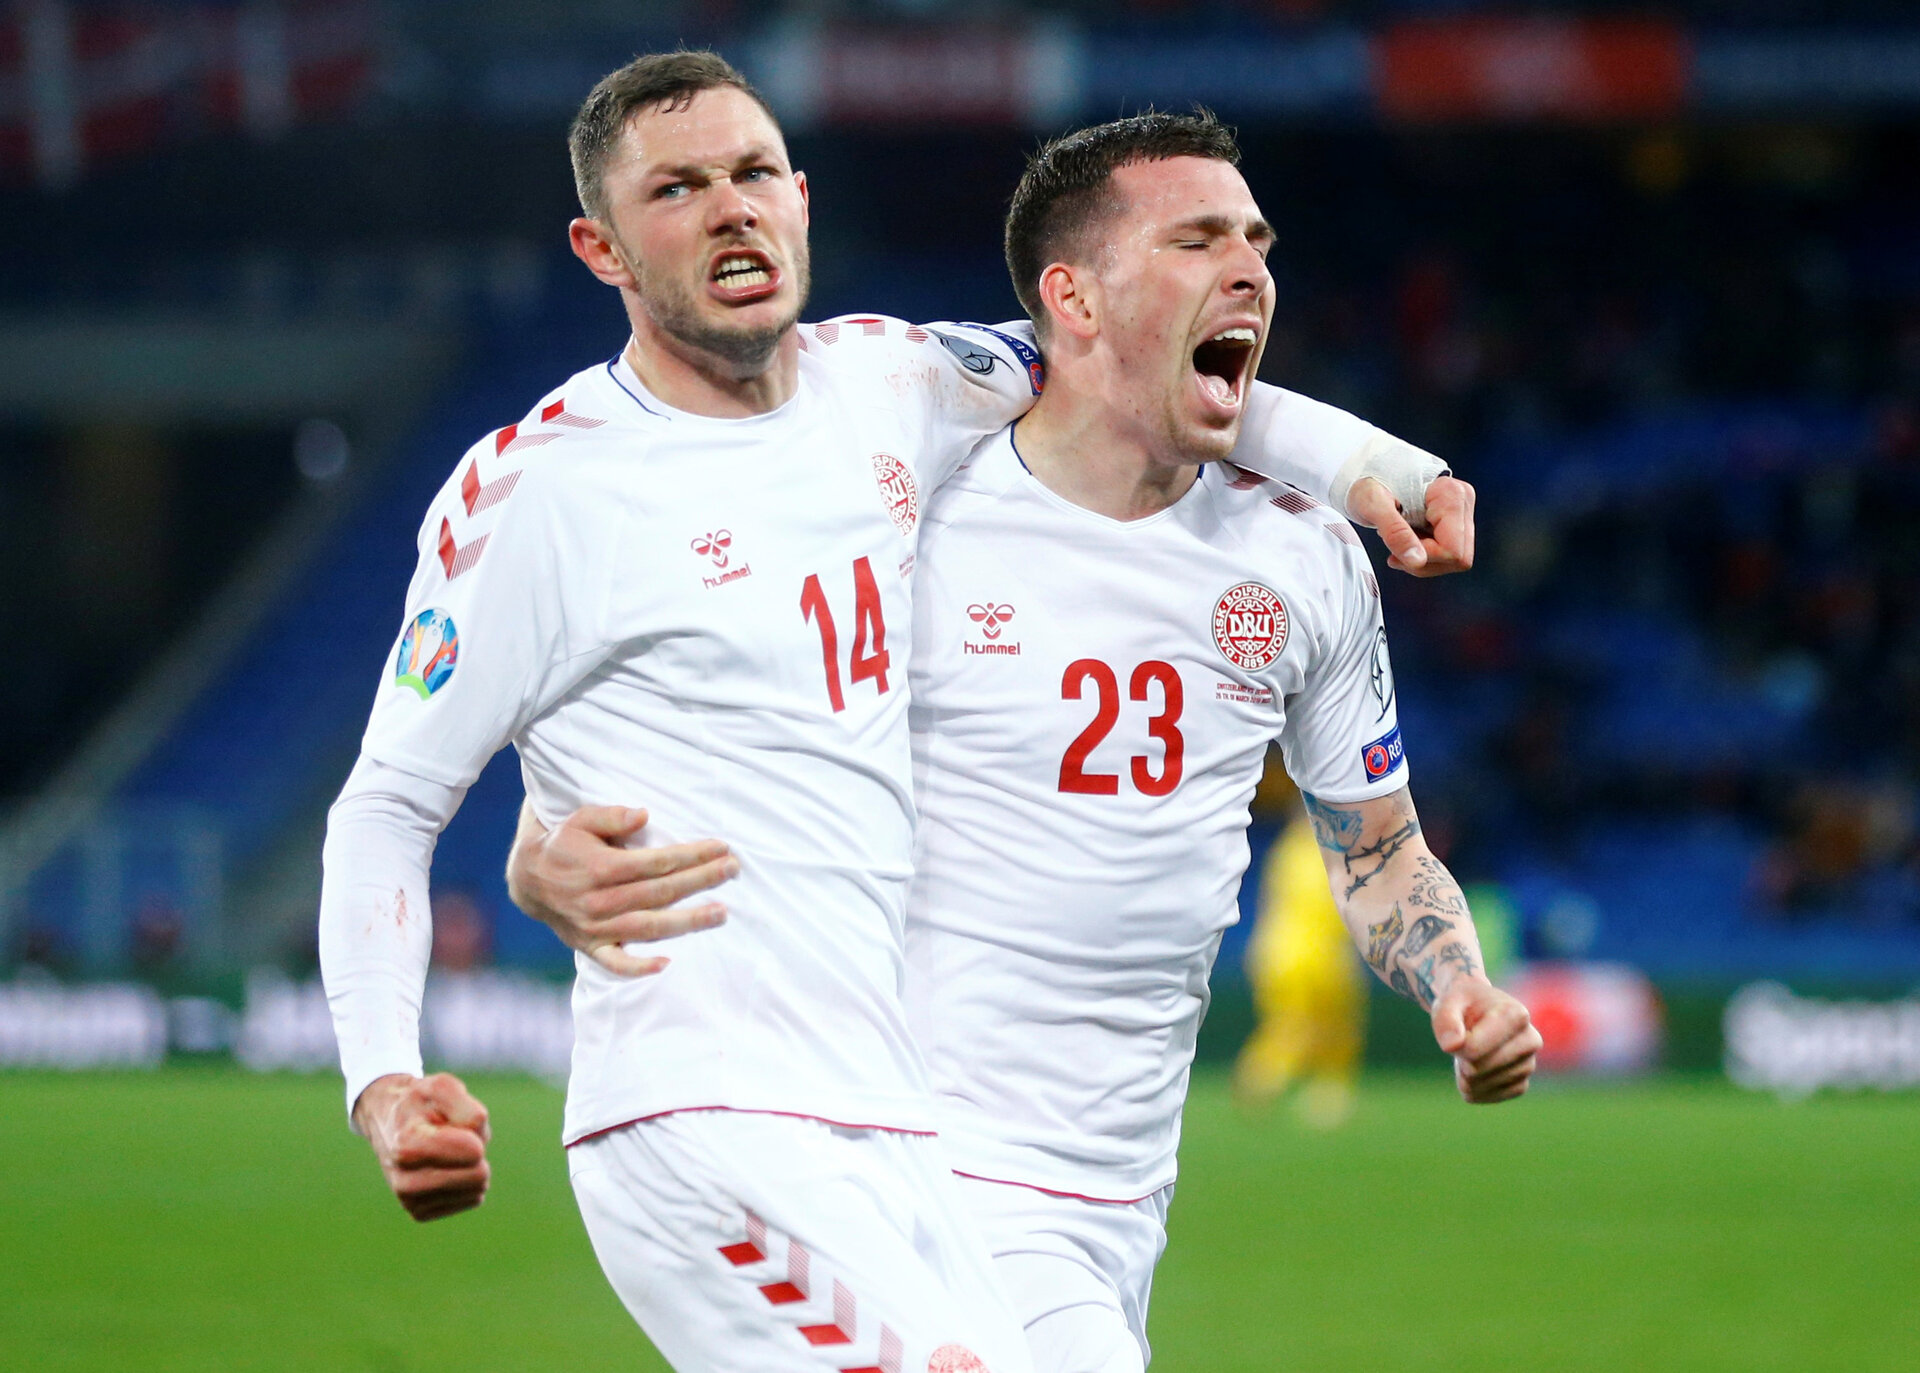 Soccer Football - Euro 2020 Qualifier - Group D - Switzerland v Denmark - St. Jakob-Park, Basel, Switzerland - March 26, 2019  Denmark's Henrik Dalsgaard celebrates scoring their third goal with Pierre-Emile Hojbjerg  REUTERS/Arnd Wiegmann